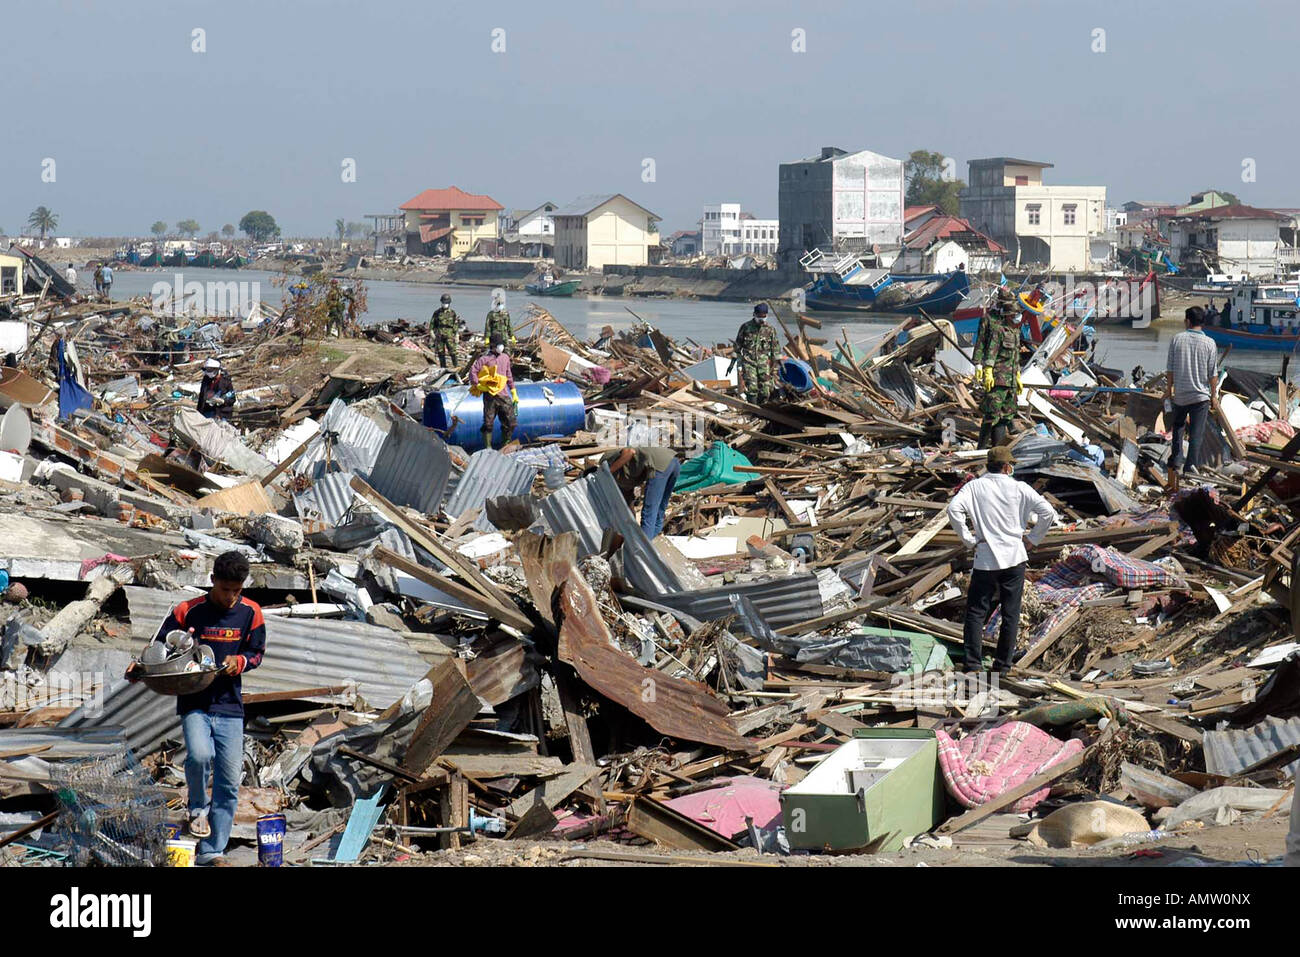 Activity near the Sungau Kruneng Aceh river in Banda Aceh Indonesia on Thursday Jan 6 2005 Stock Photo